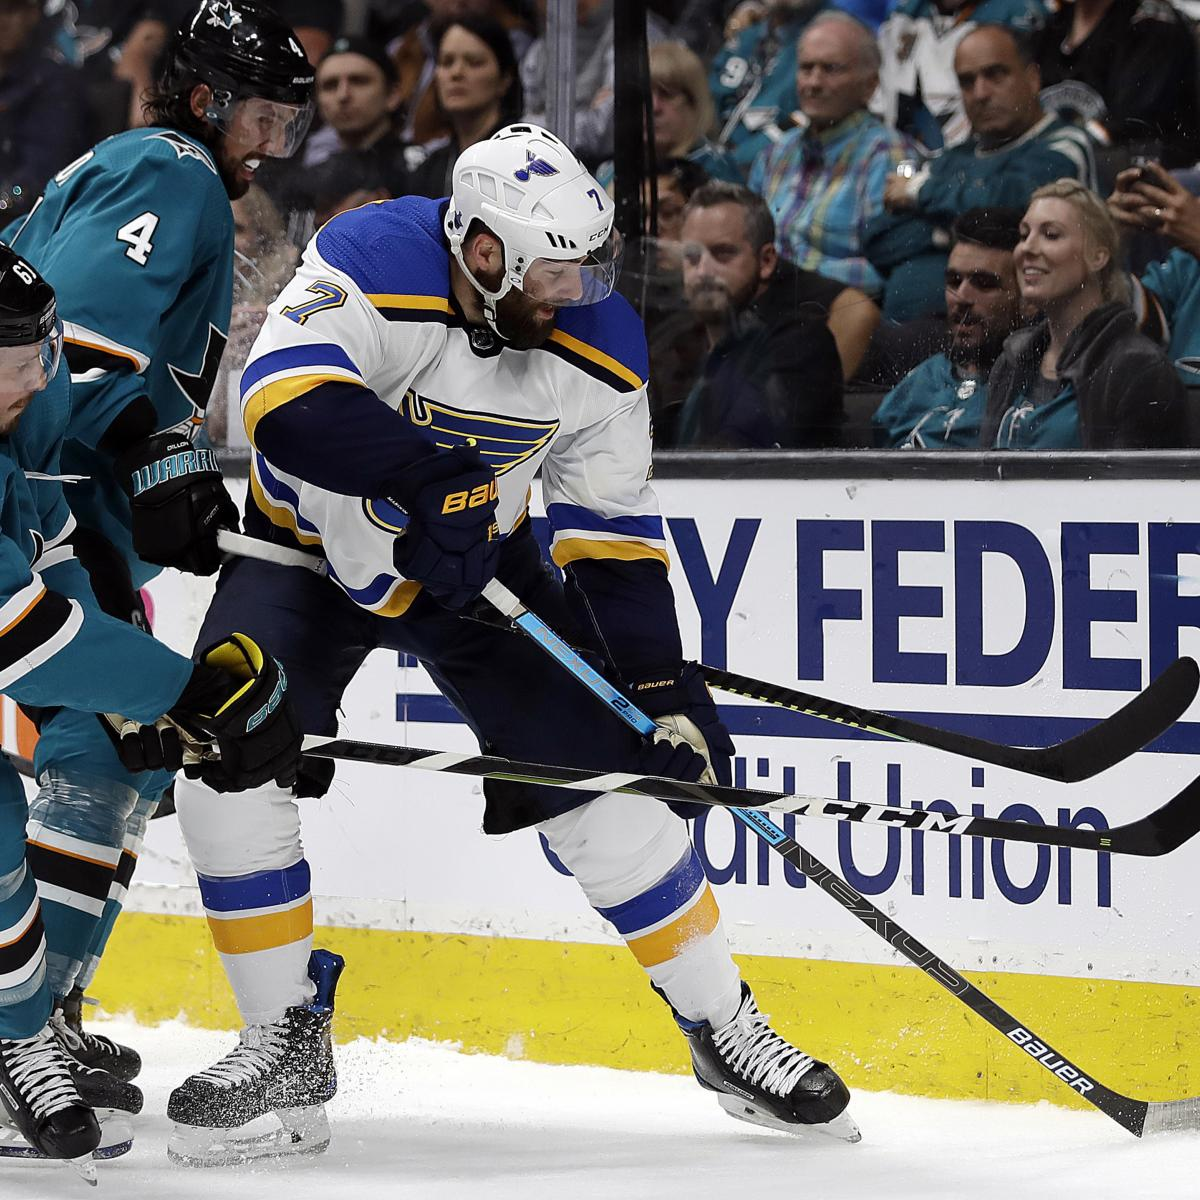 NHL Playoffs 2019: Wednesday Vegas Odds, Schedule And